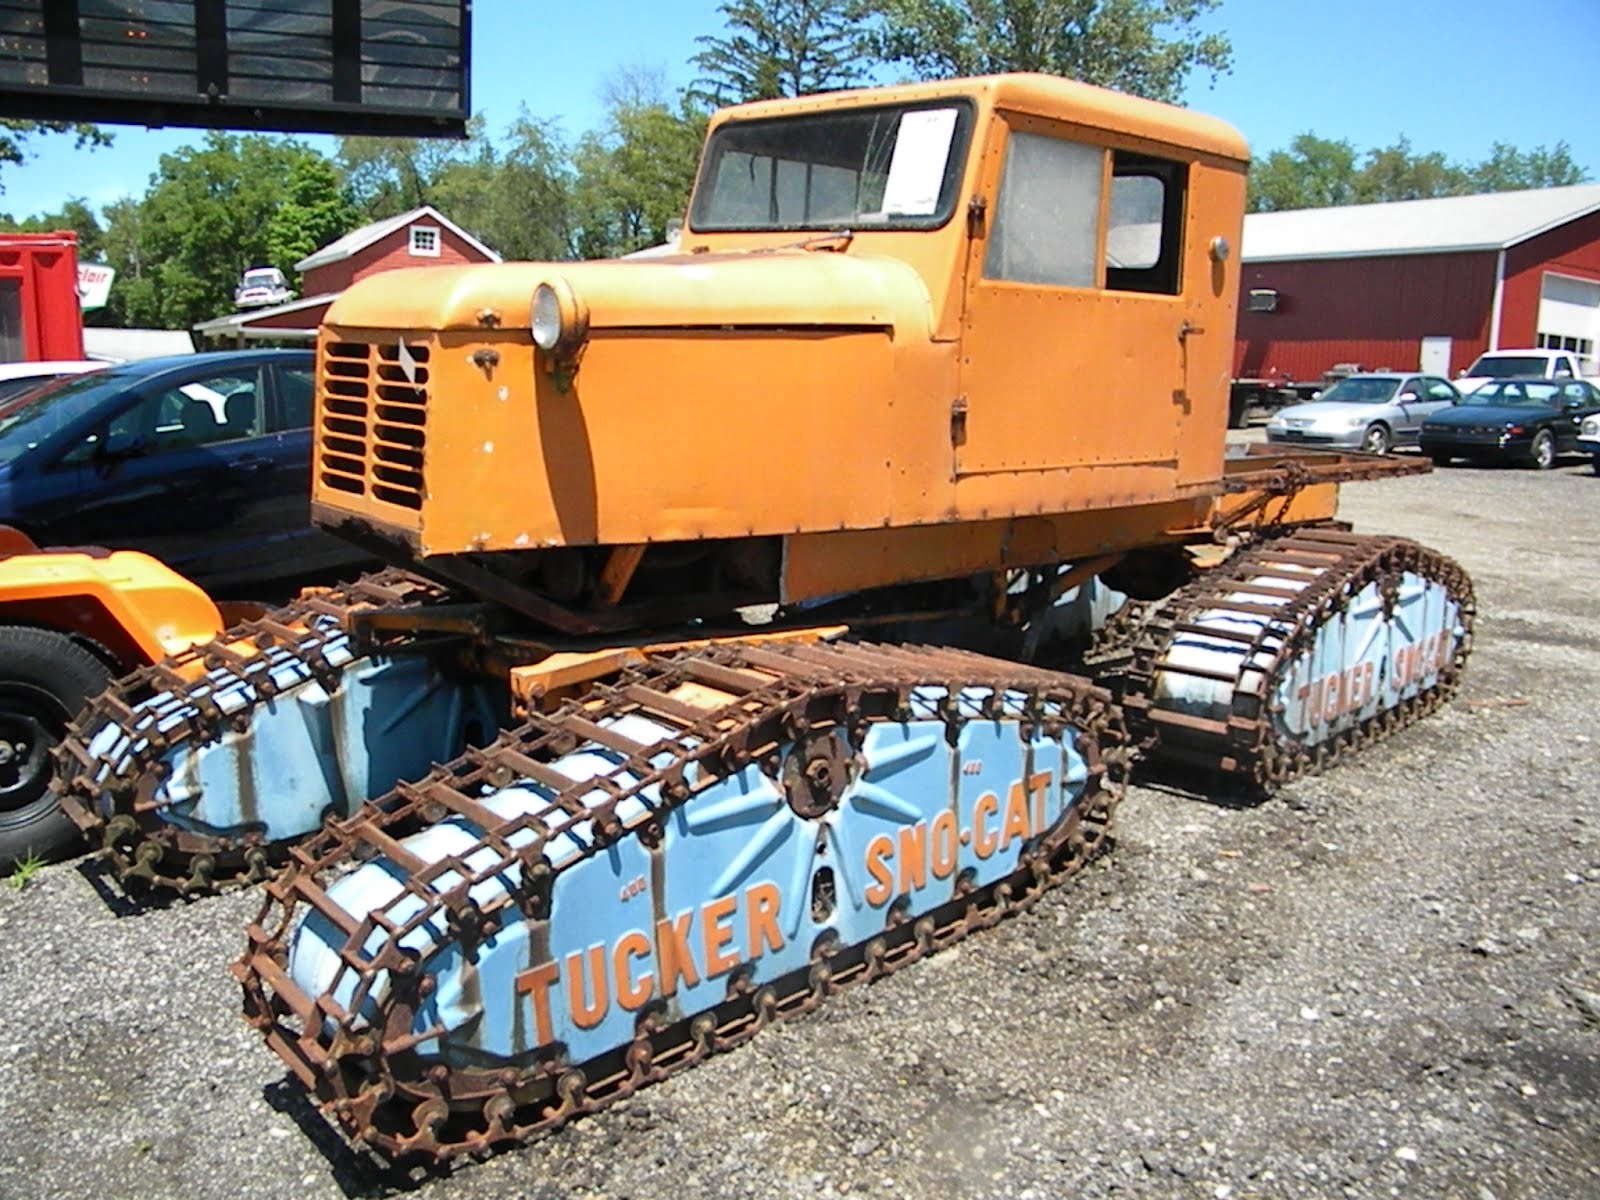 Tucker Sno Cat For Sale Craigslist - Beat on the street tucker snow cat